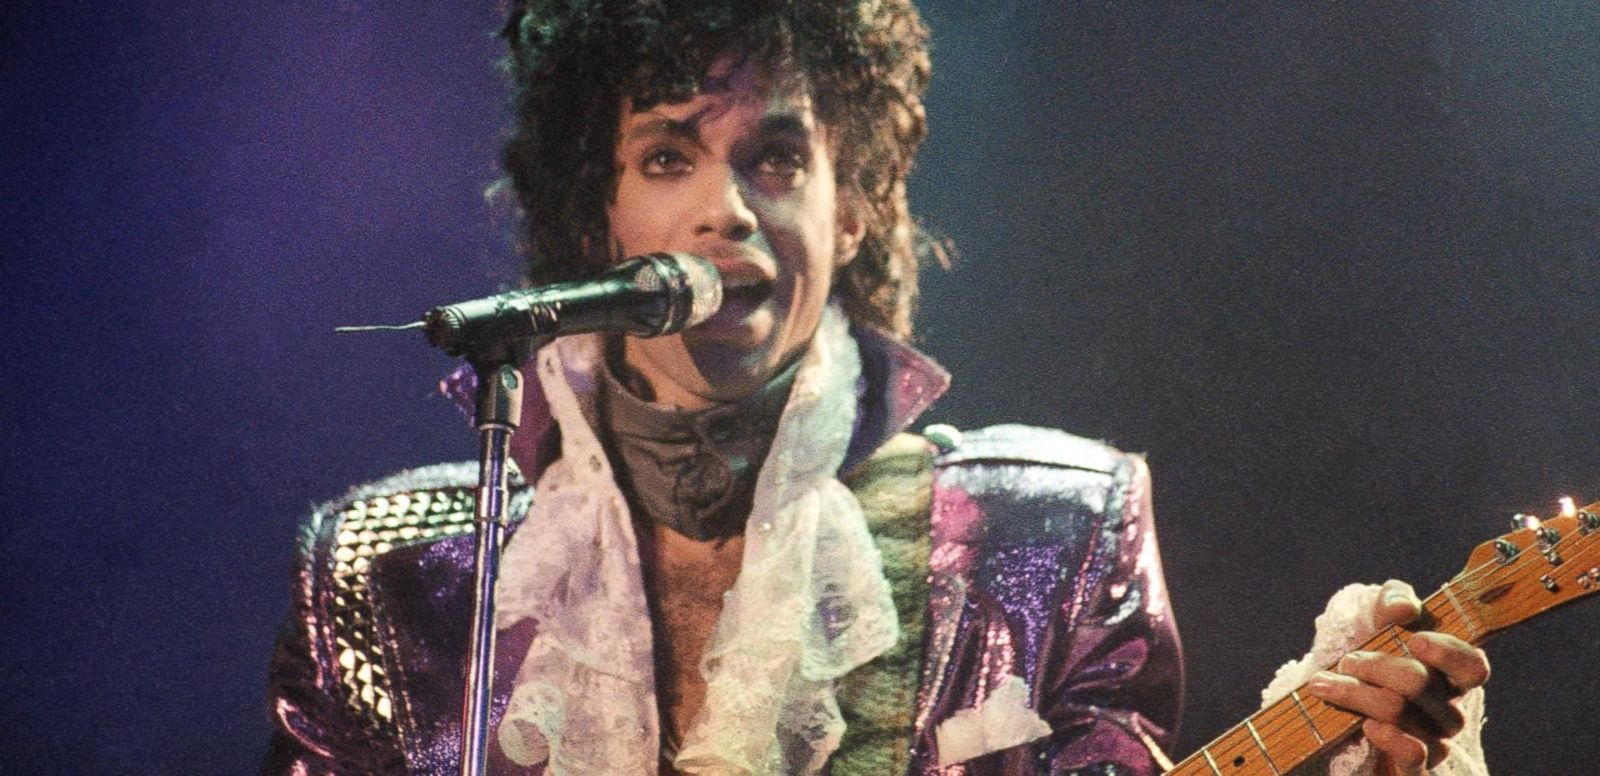 VIDEO: Law Enforcement Investigates if Prince Died of Drug Overdose